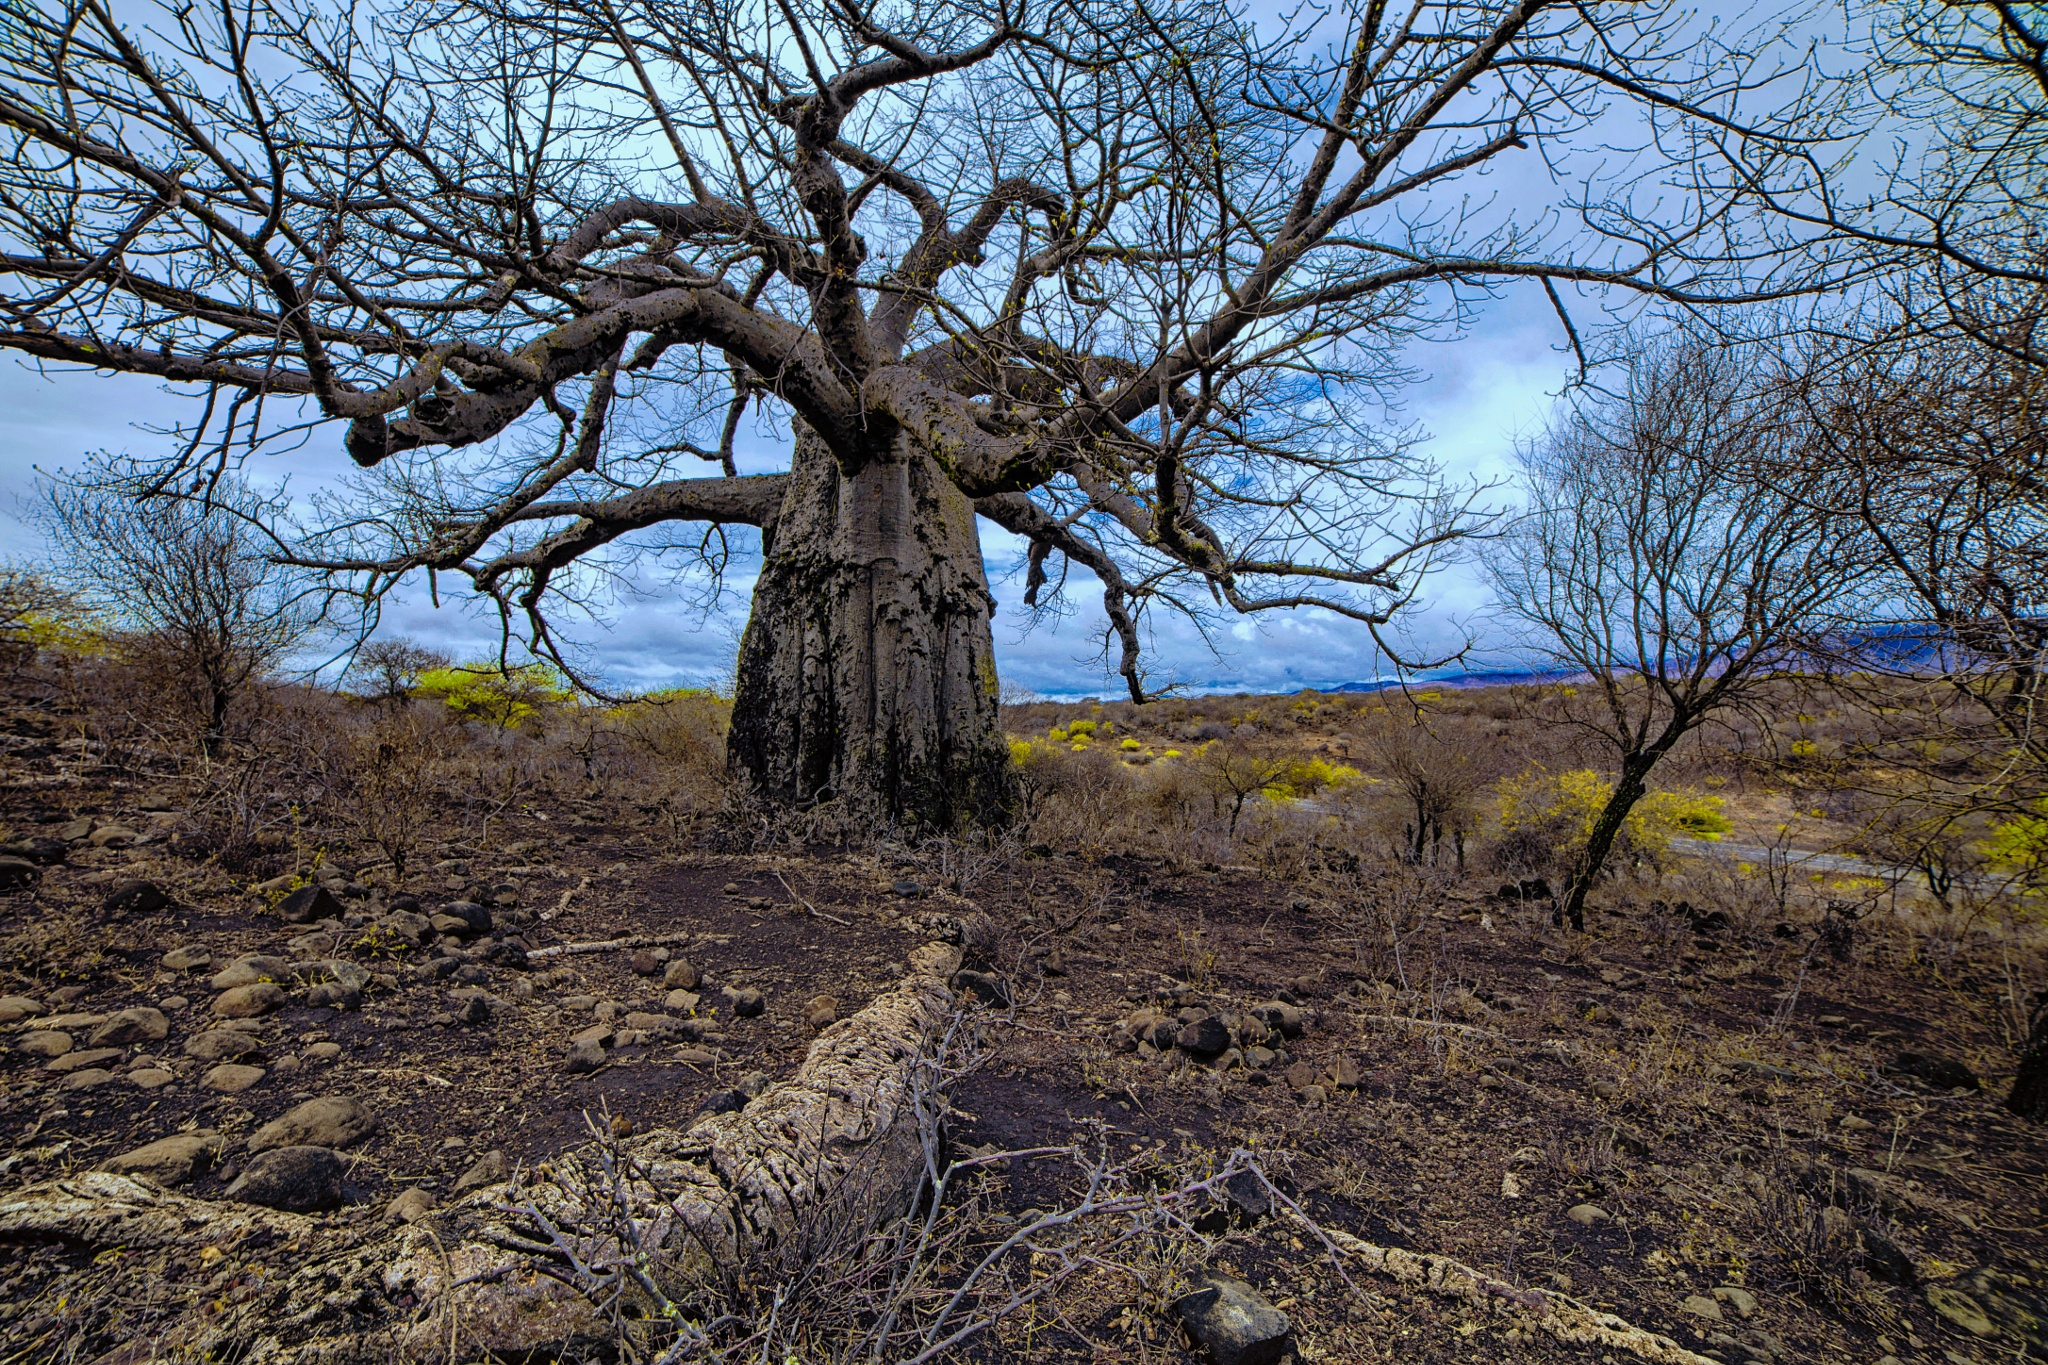 The tree of life by andré figueiredo